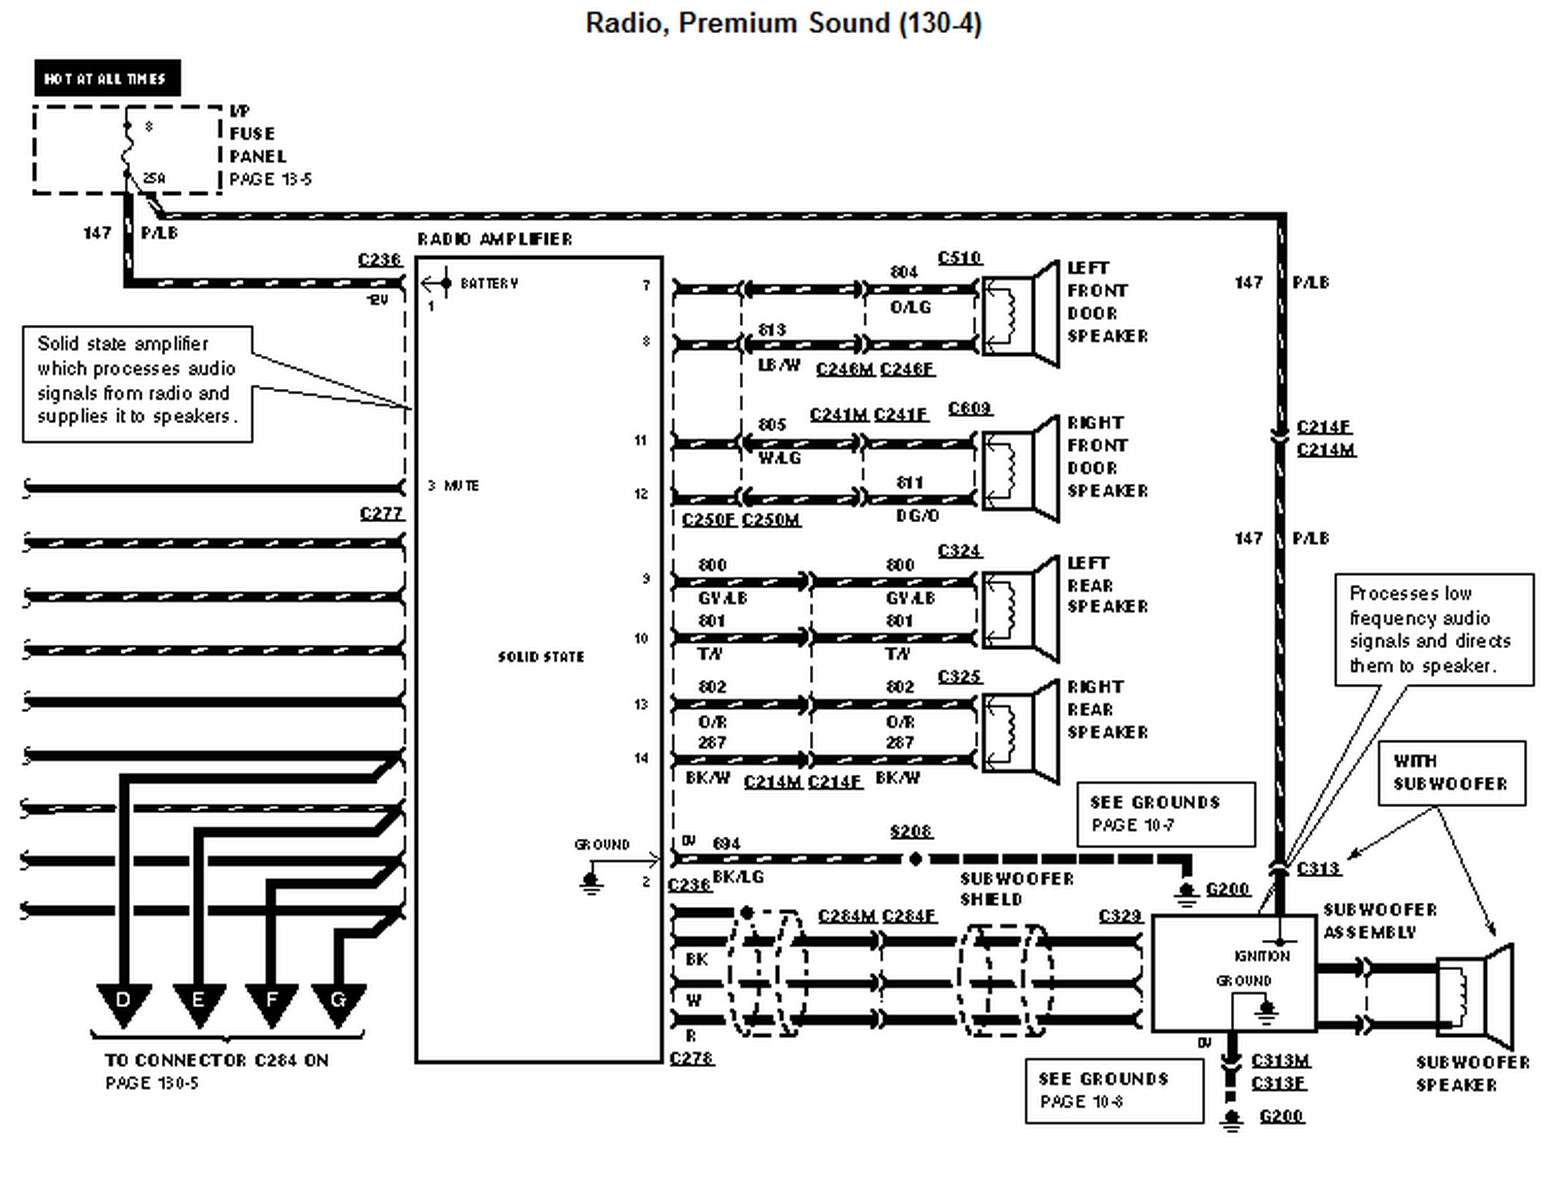 1994 ford F150 Radio Wiring Diagram | Free Wiring Diagram